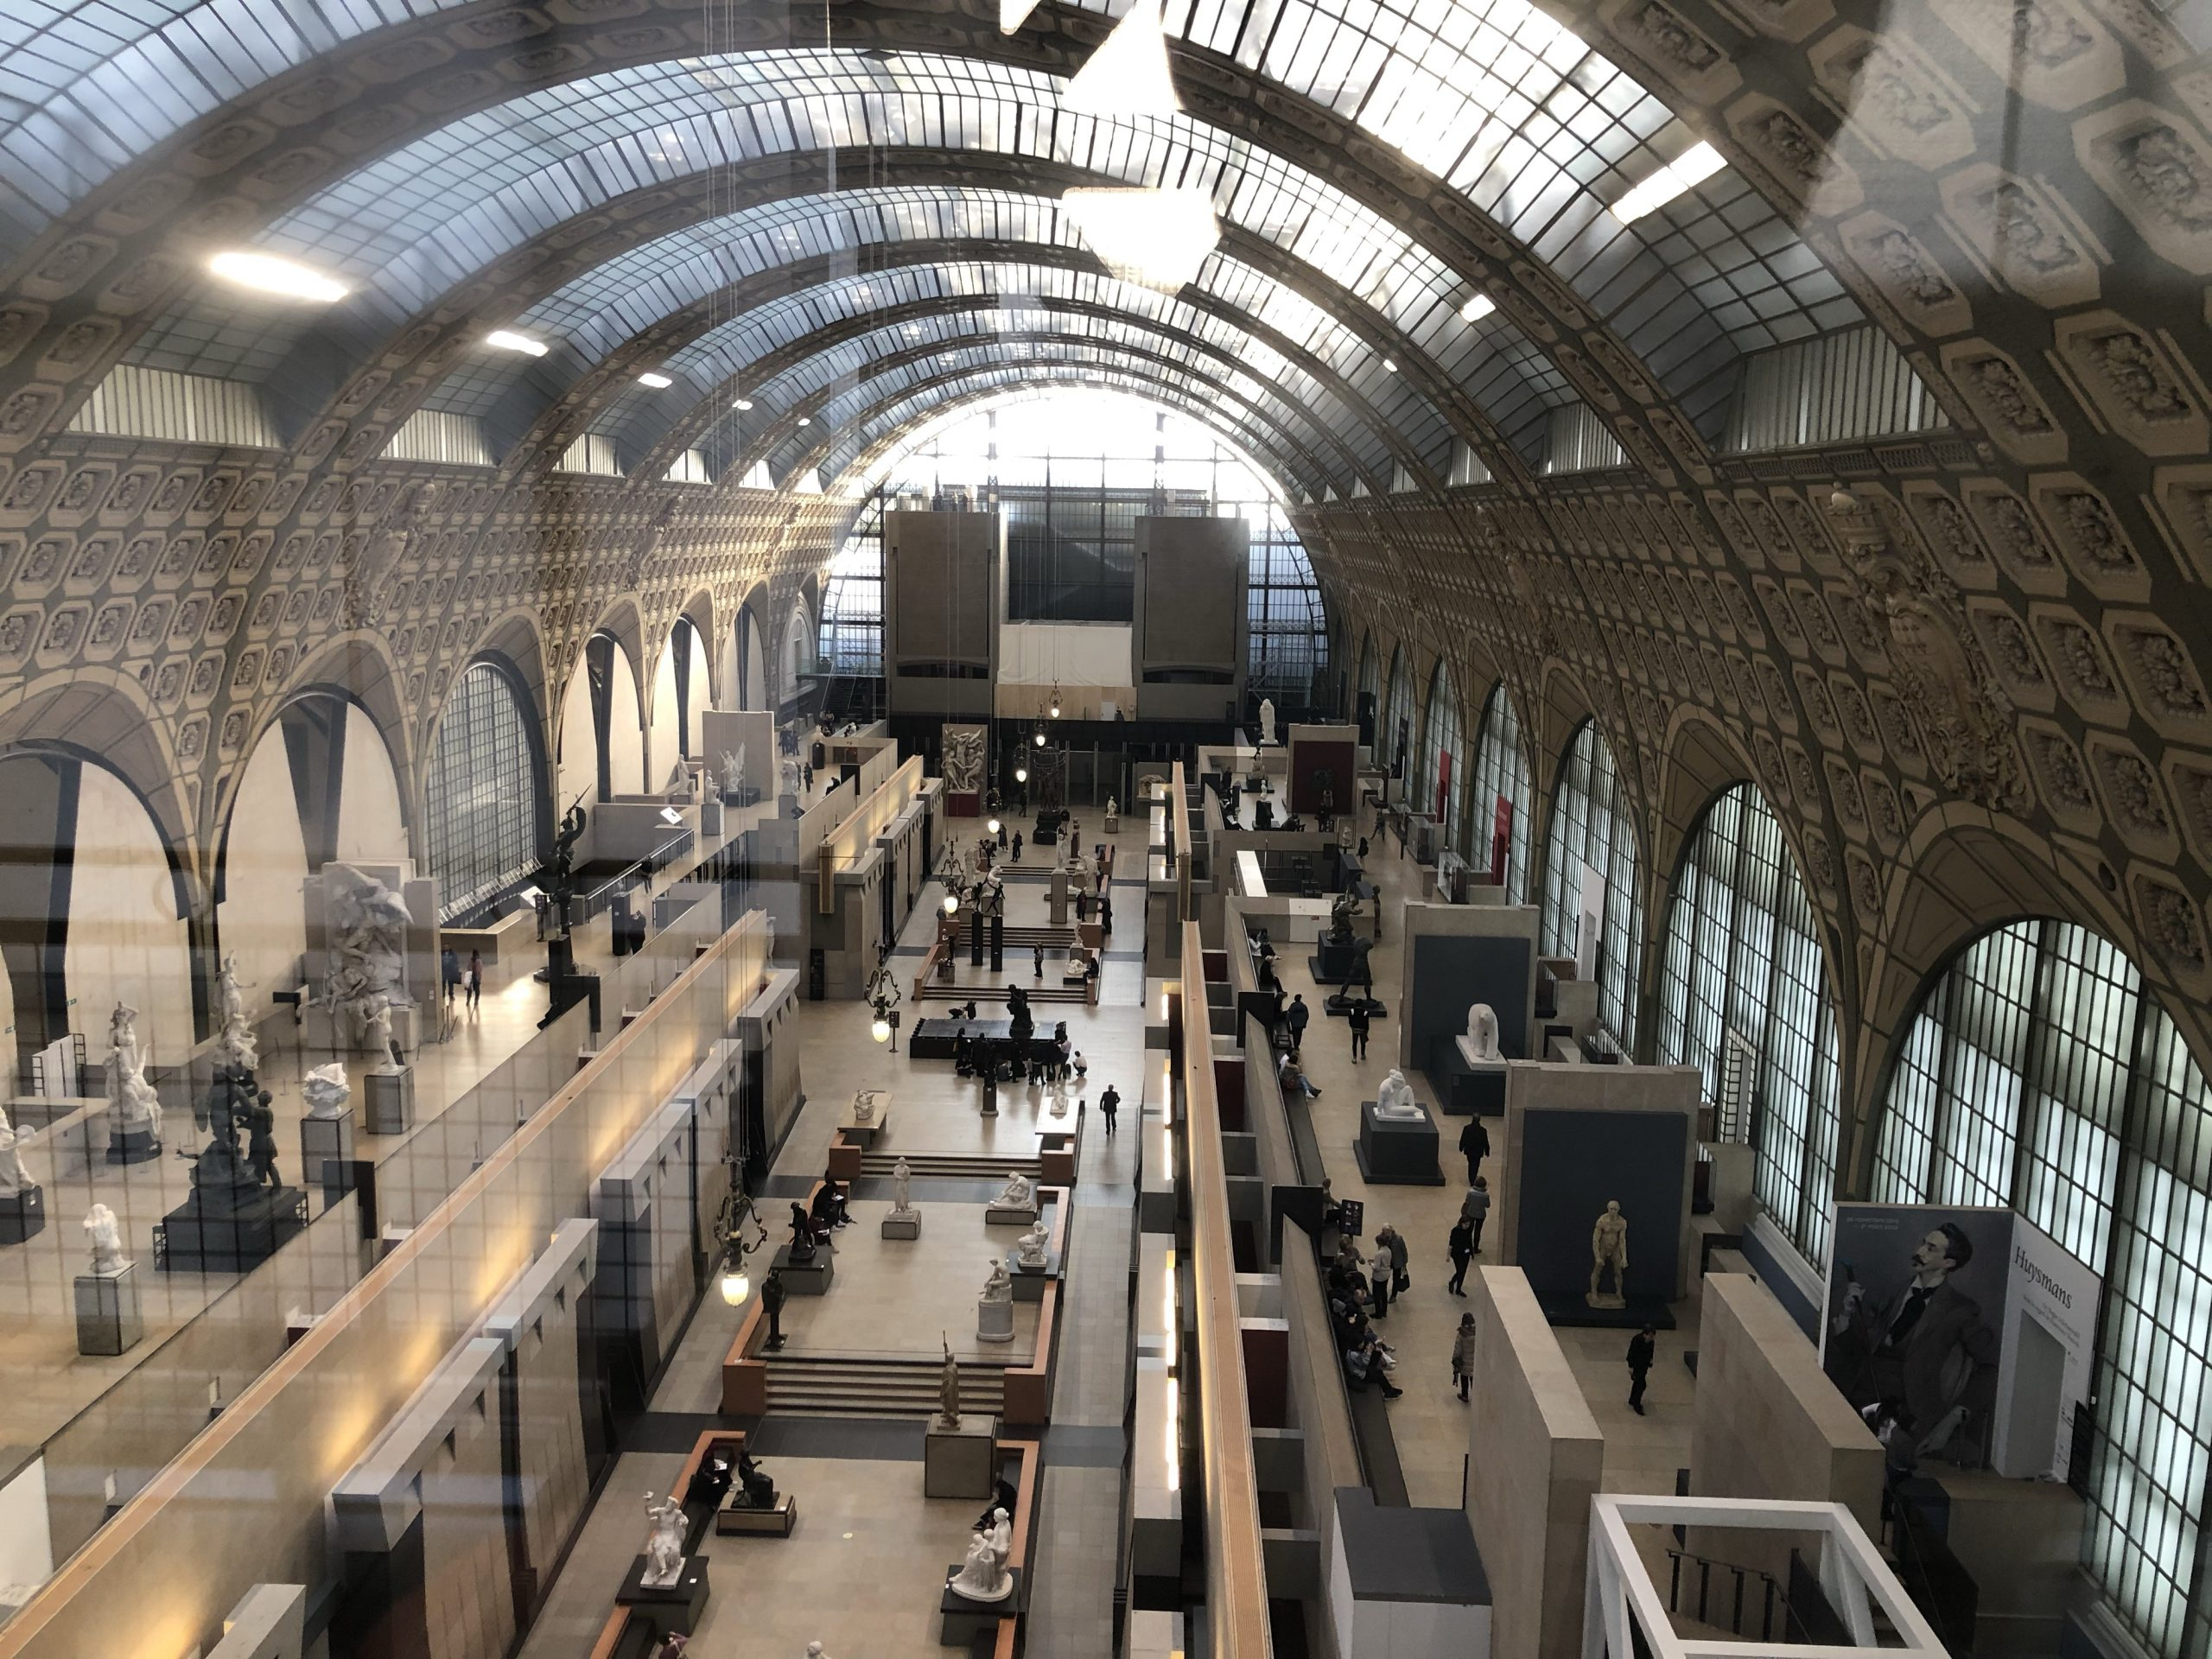 Visiting Musée d'Orsay: Everything You Need to Know